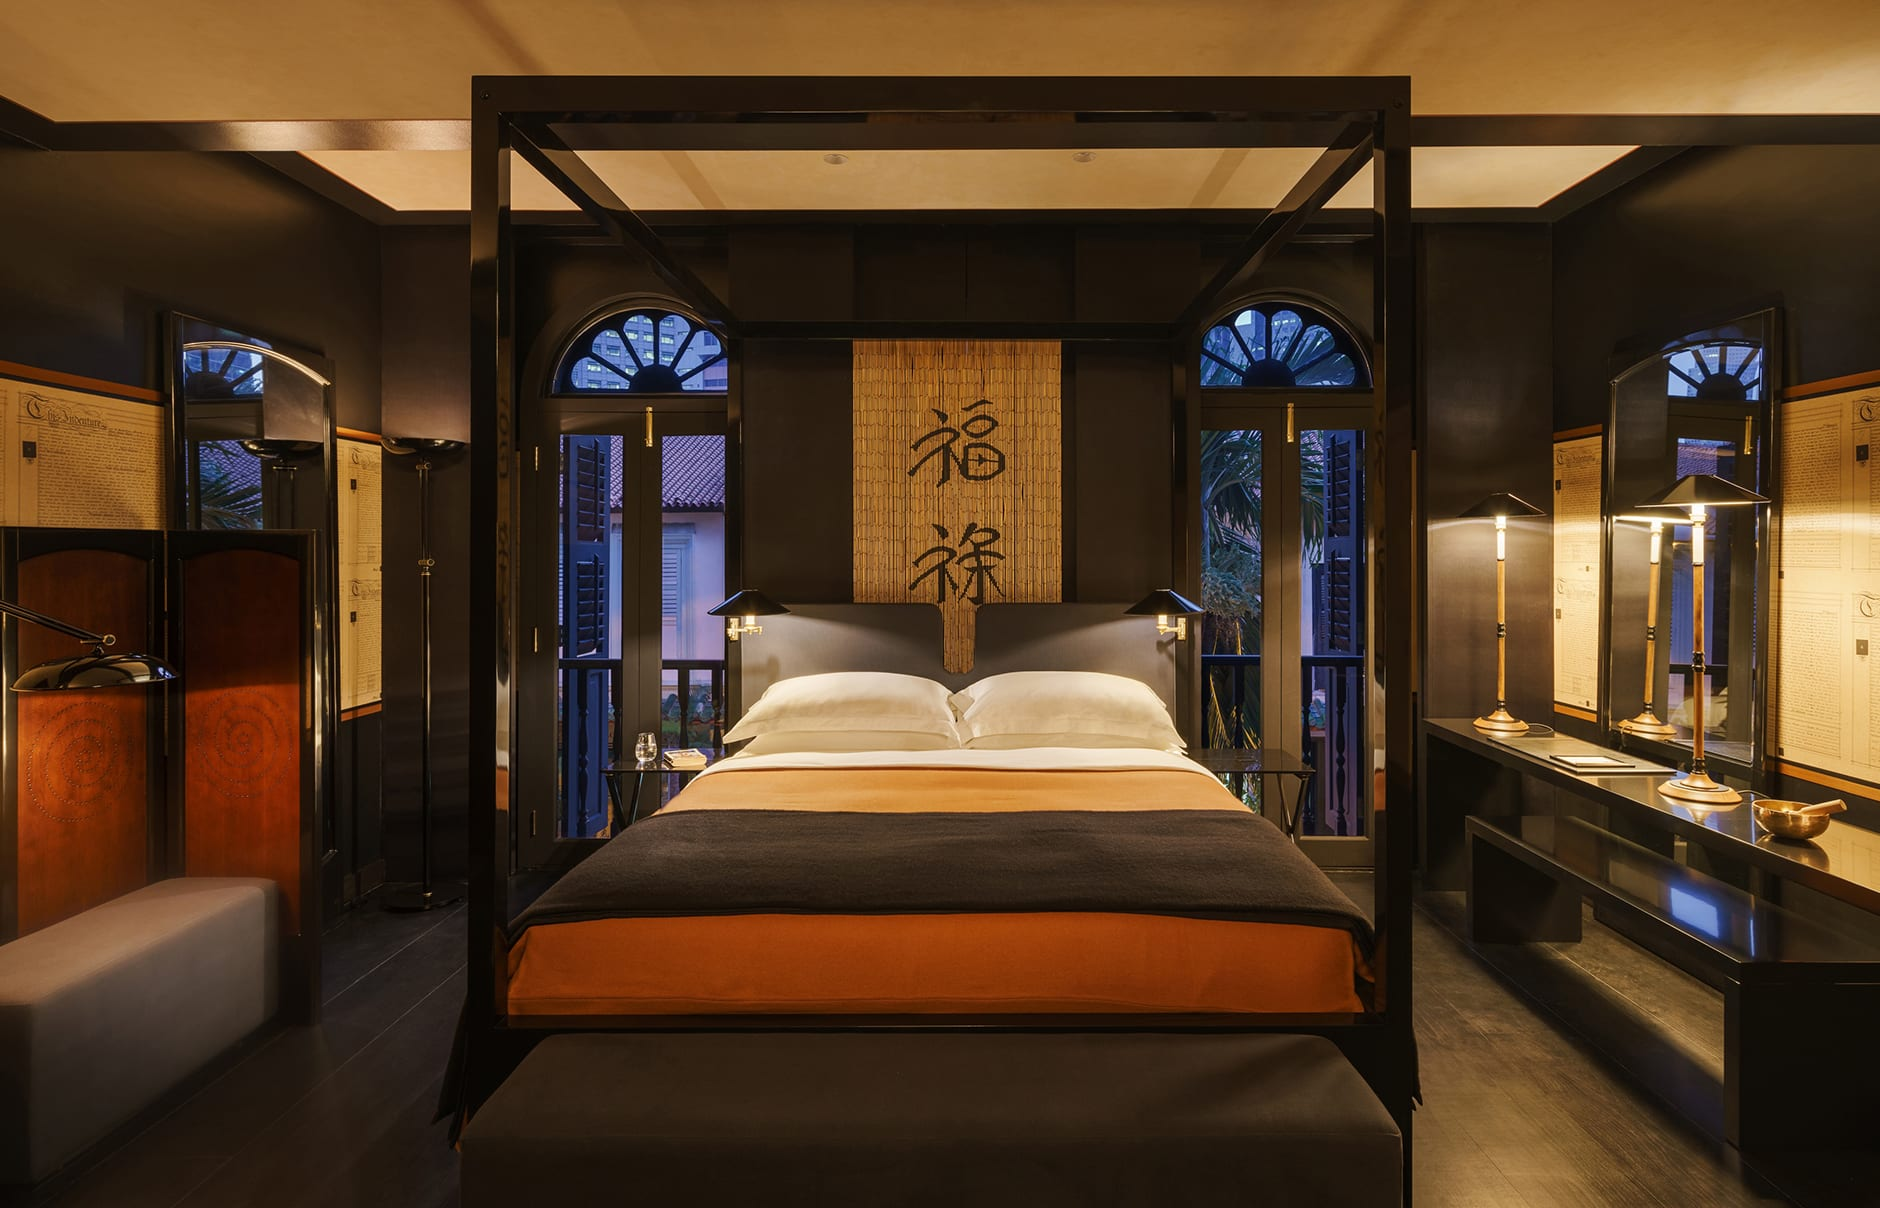 Six Senses Duxton, Singapore, Opium Room. © Six Senses Hotels Resorts Spas